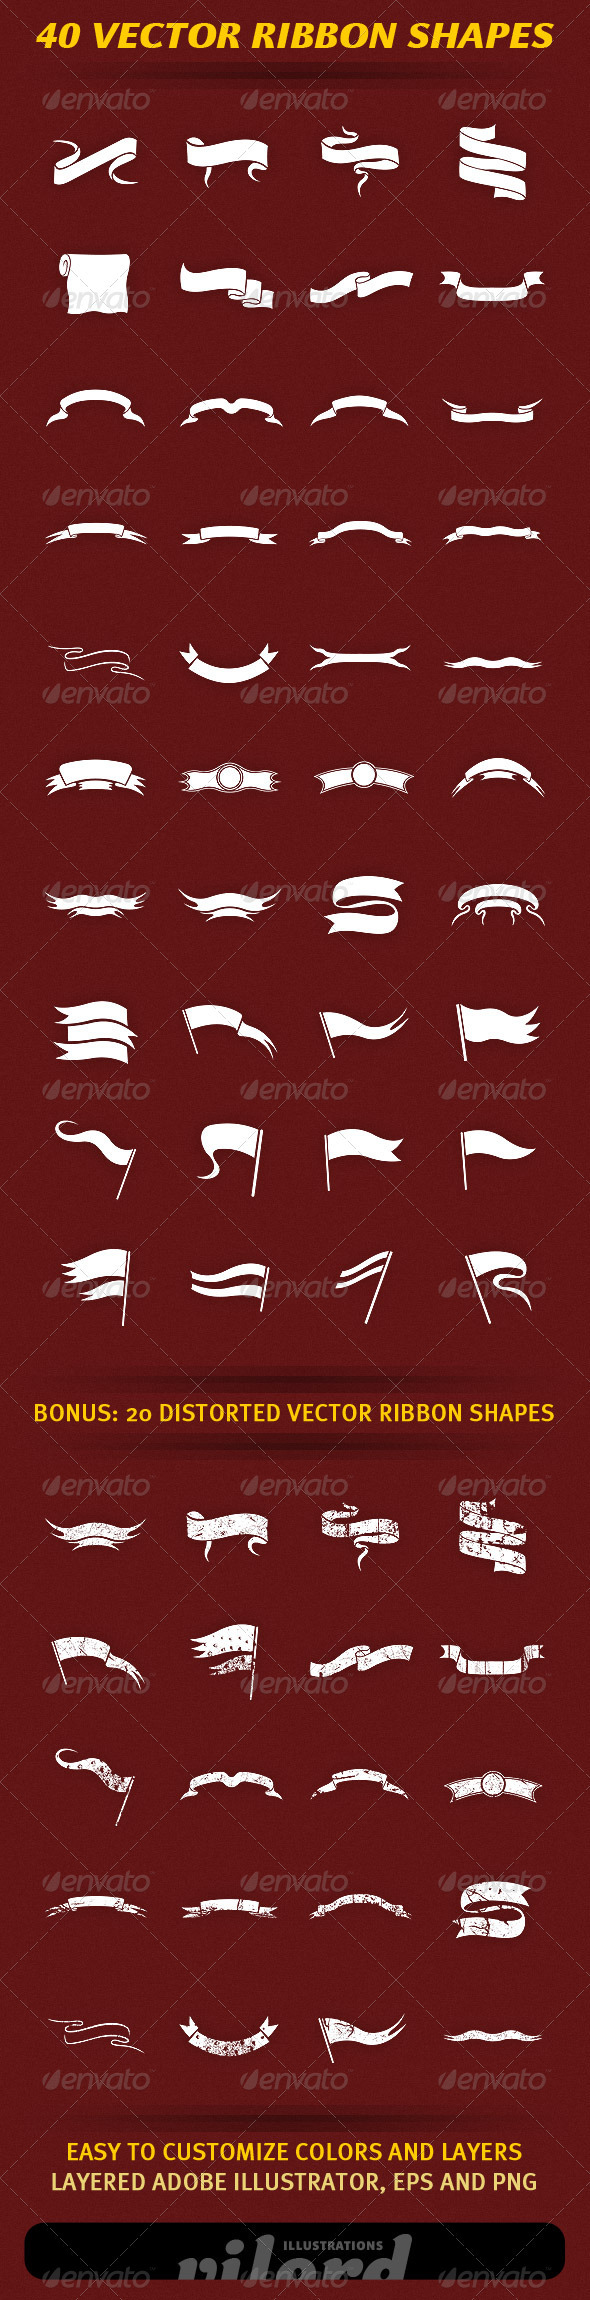 40 Vector Ribbon Shapes